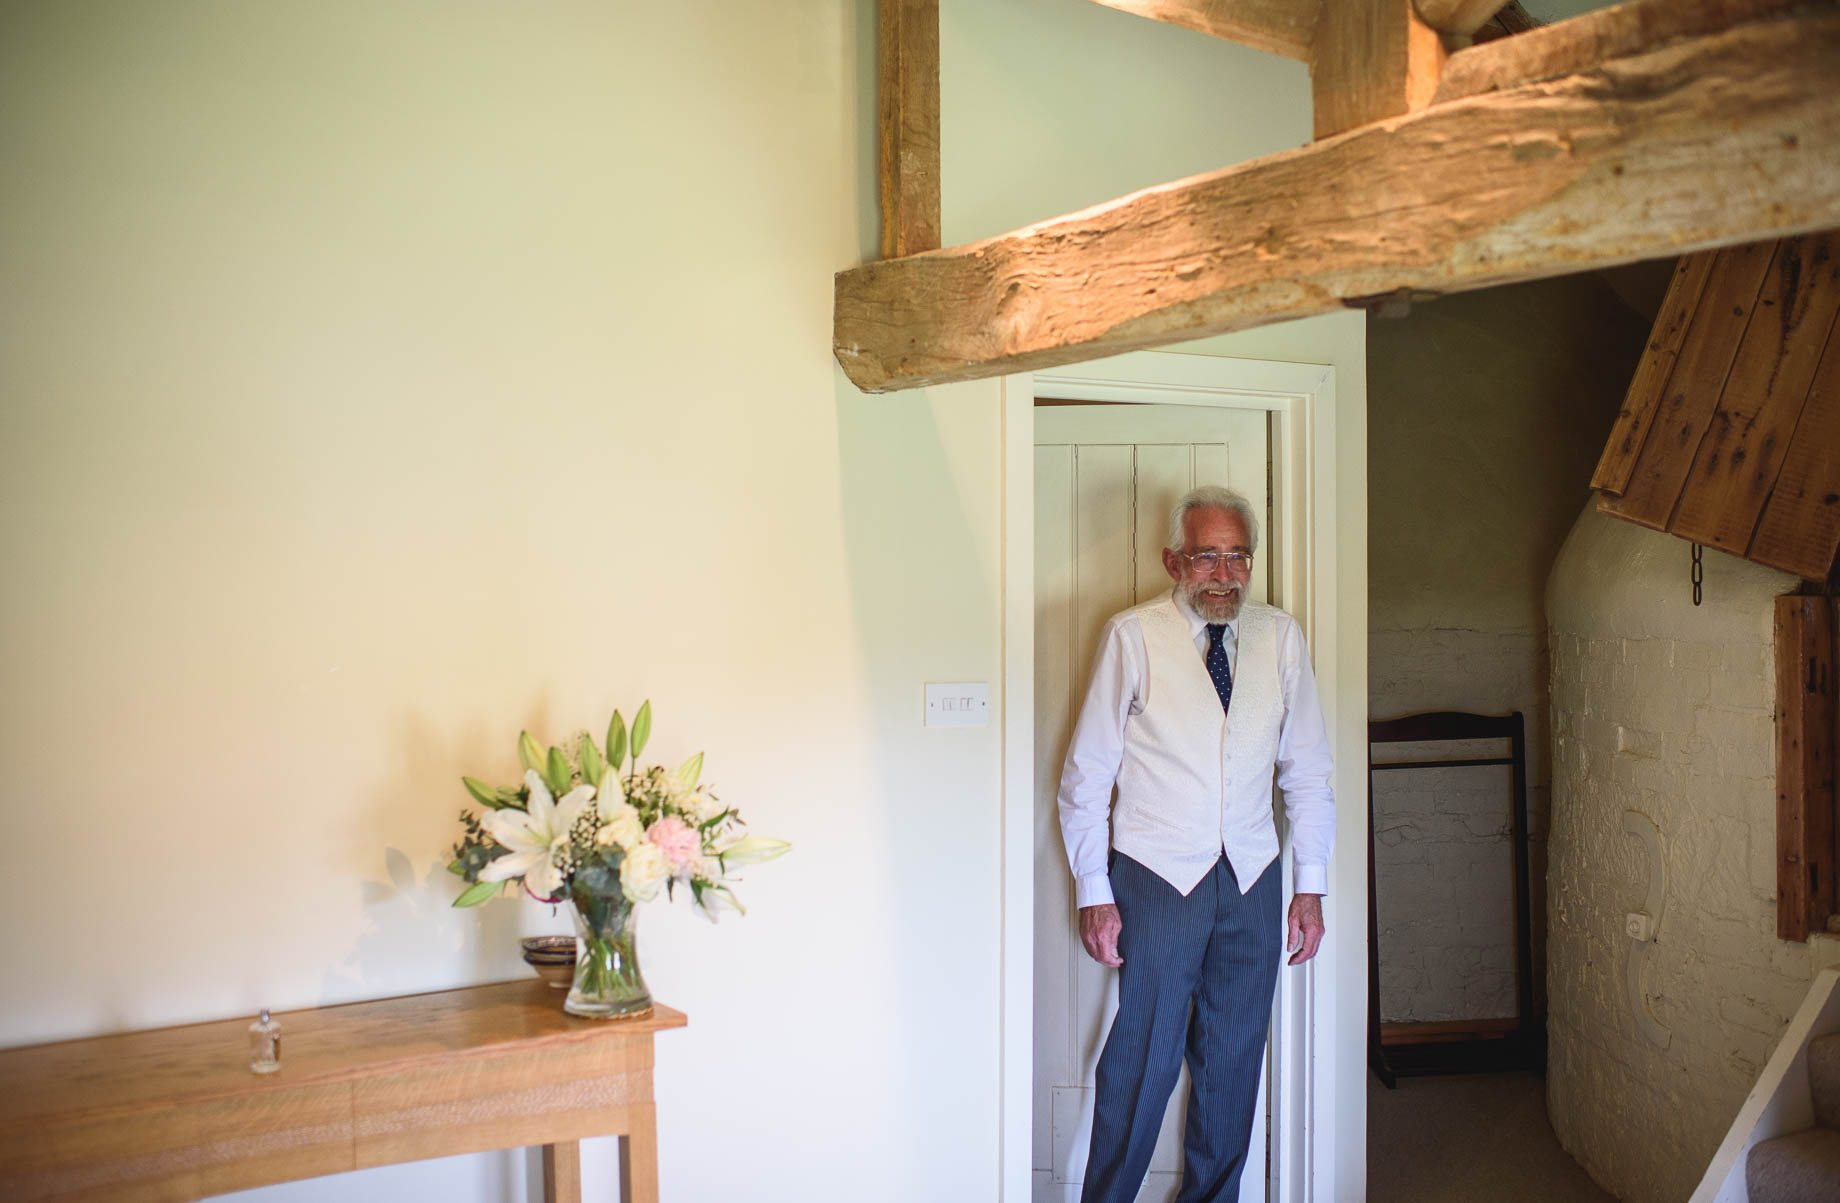 Bury Court Barn wedding photography by Guy Collier - Heather and Pat (18 of 170)